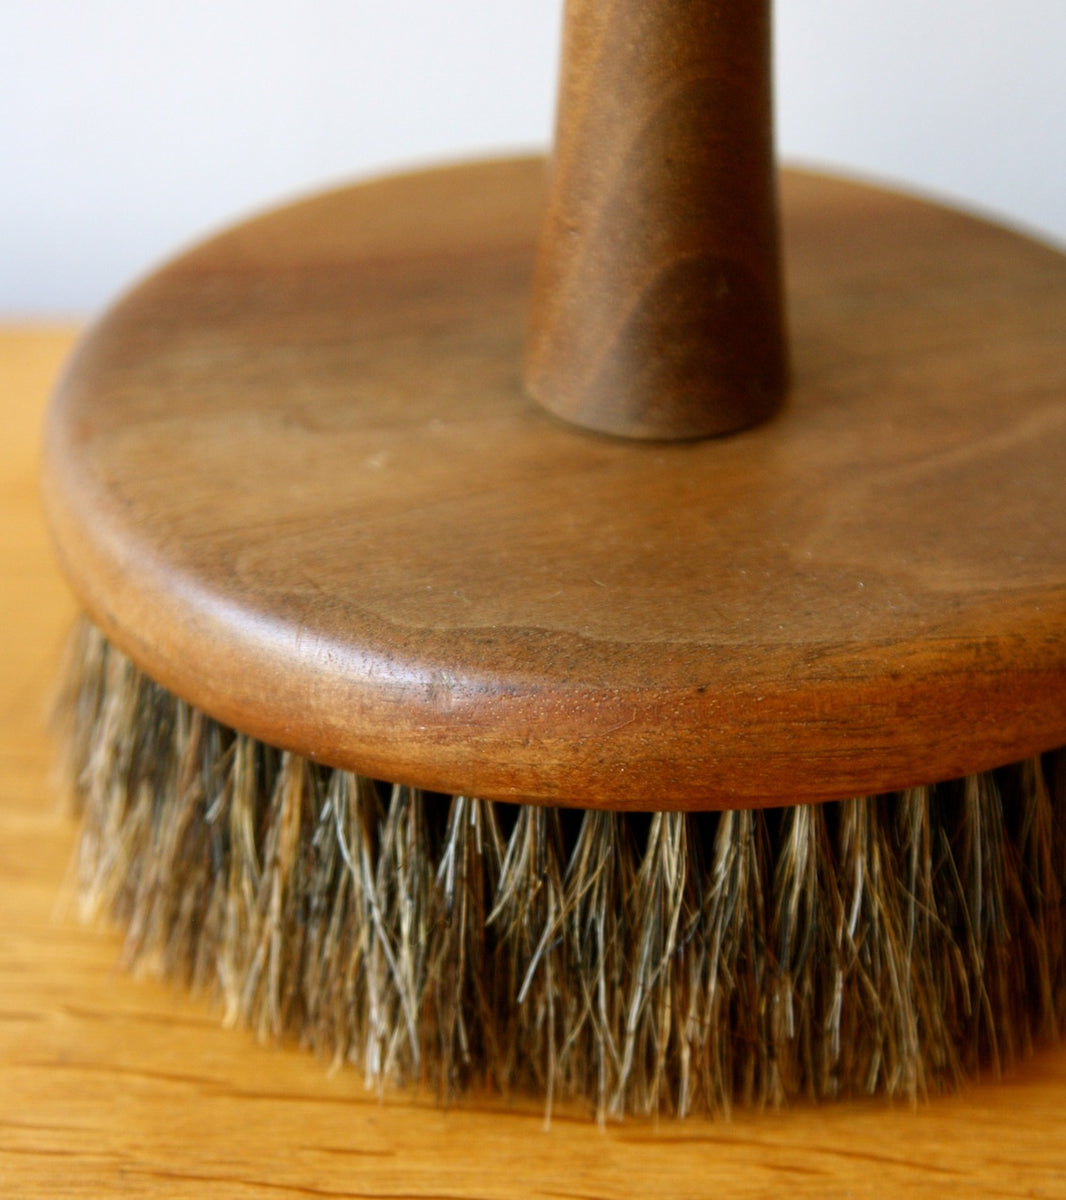 Round Solid Walnut Brush with Natural Bristles, Carl Auböck